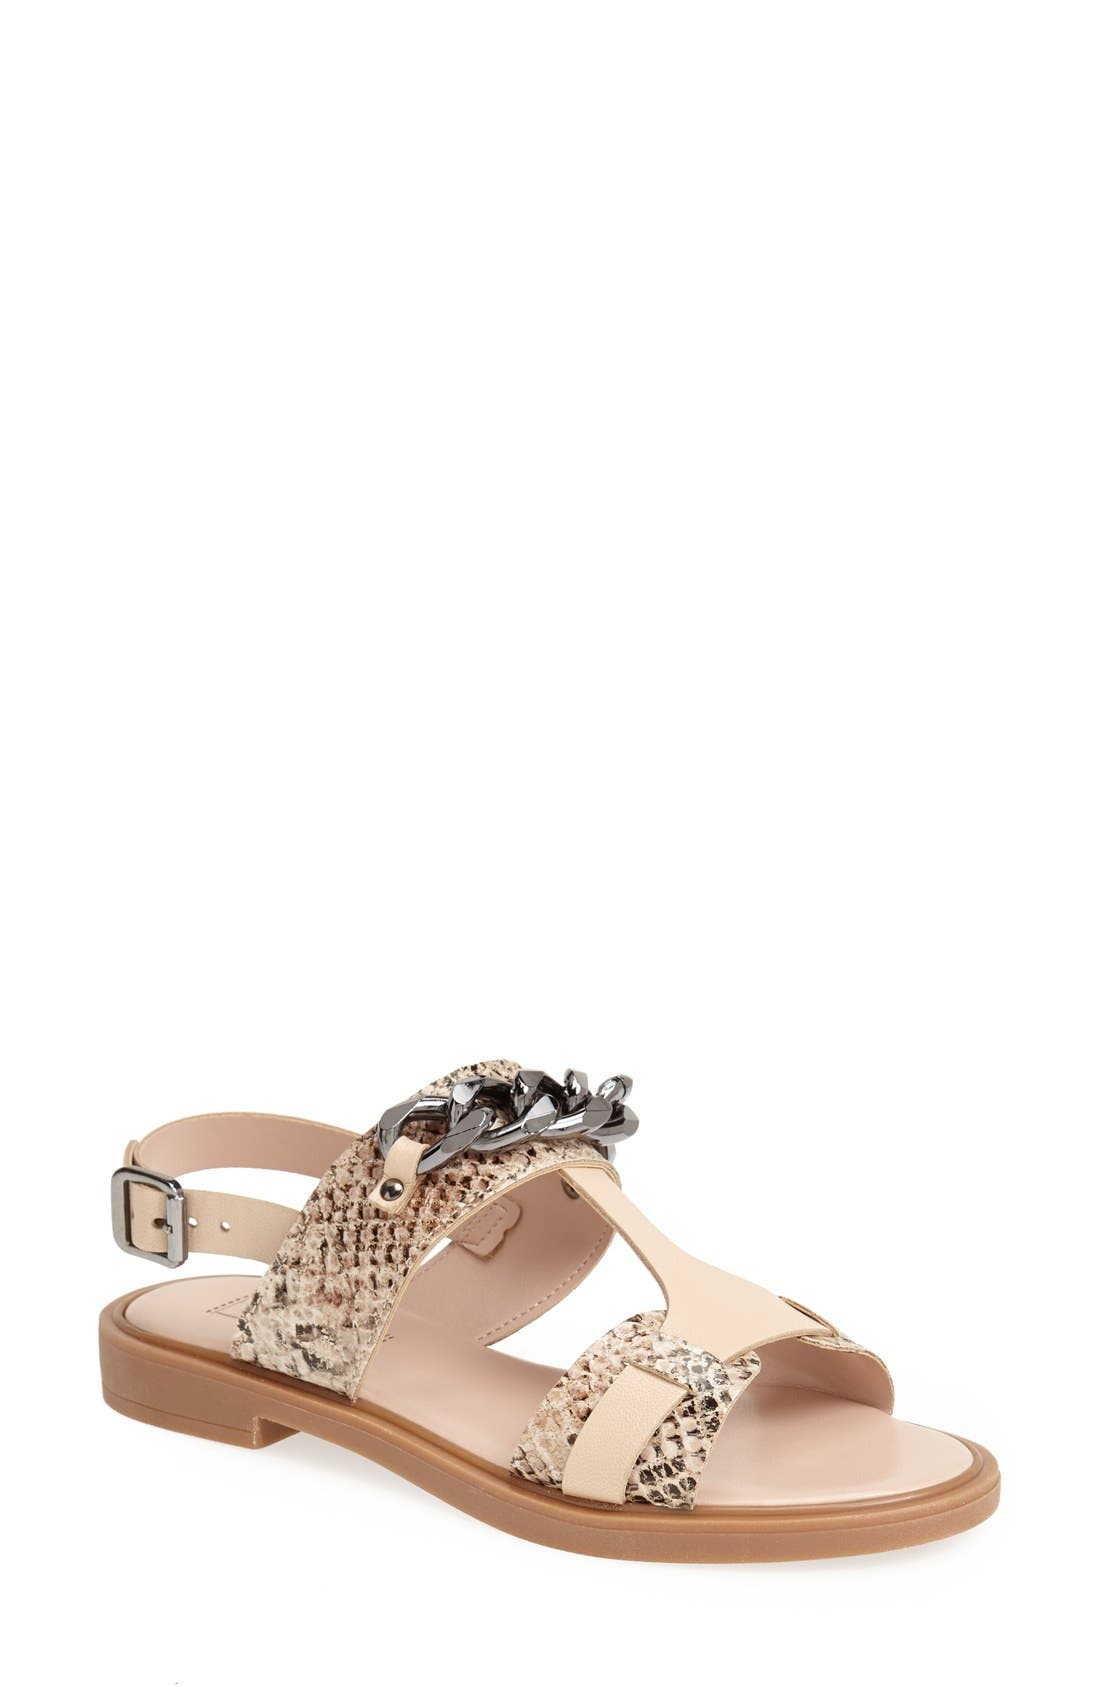 Main Image - Topshop 'Fly Chain' T-Strap Sandal (Women)